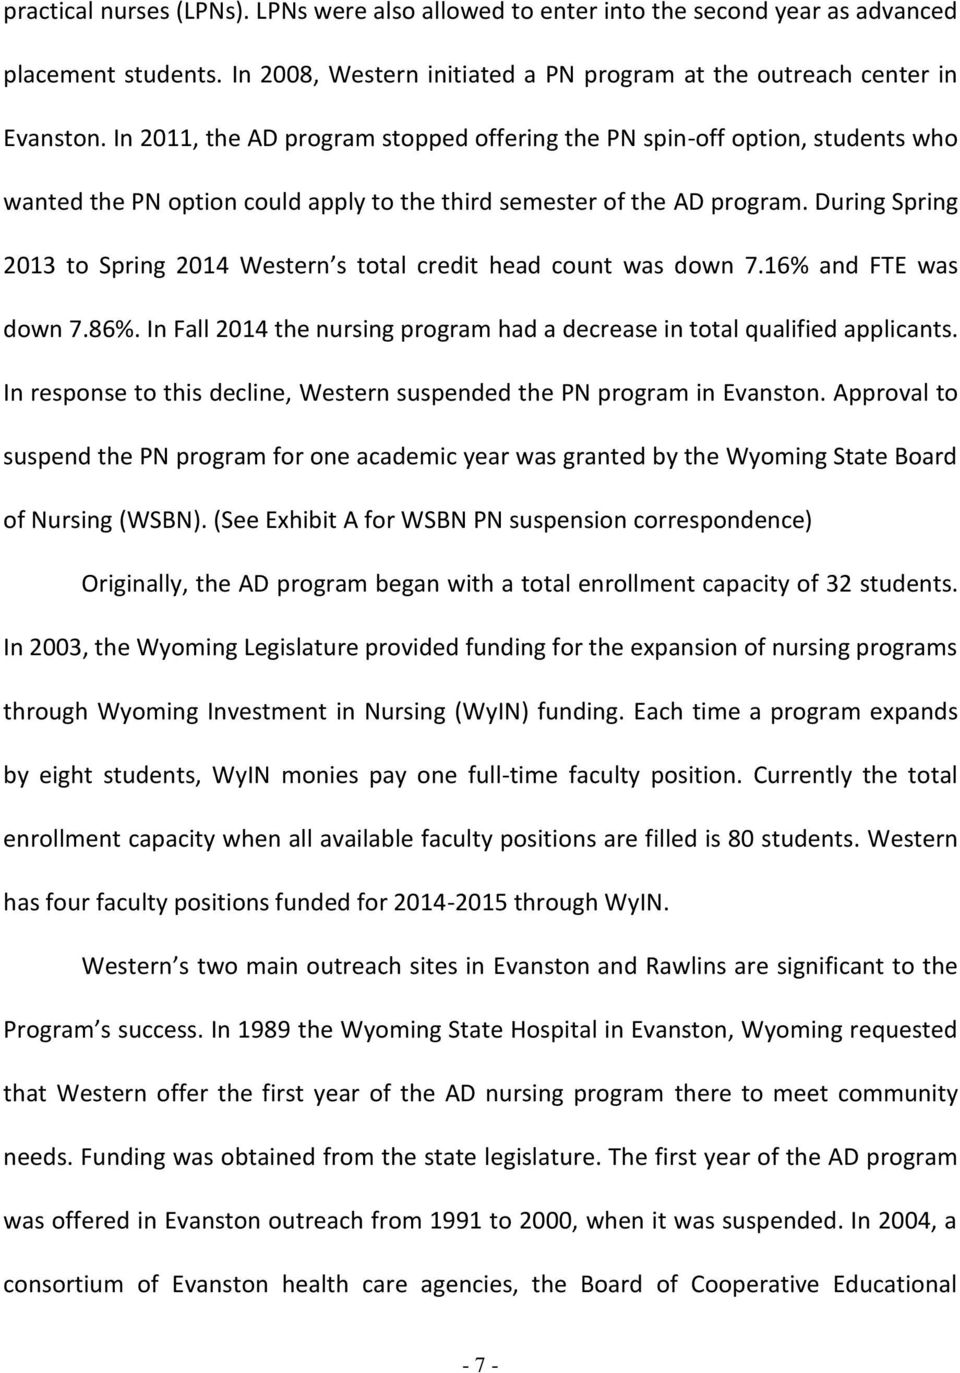 During Spring 2013 to Spring 2014 Western s total credit head count was down 7.16% and FTE was down 7.86%. In Fall 2014 the nursing program had a decrease in total qualified applicants.